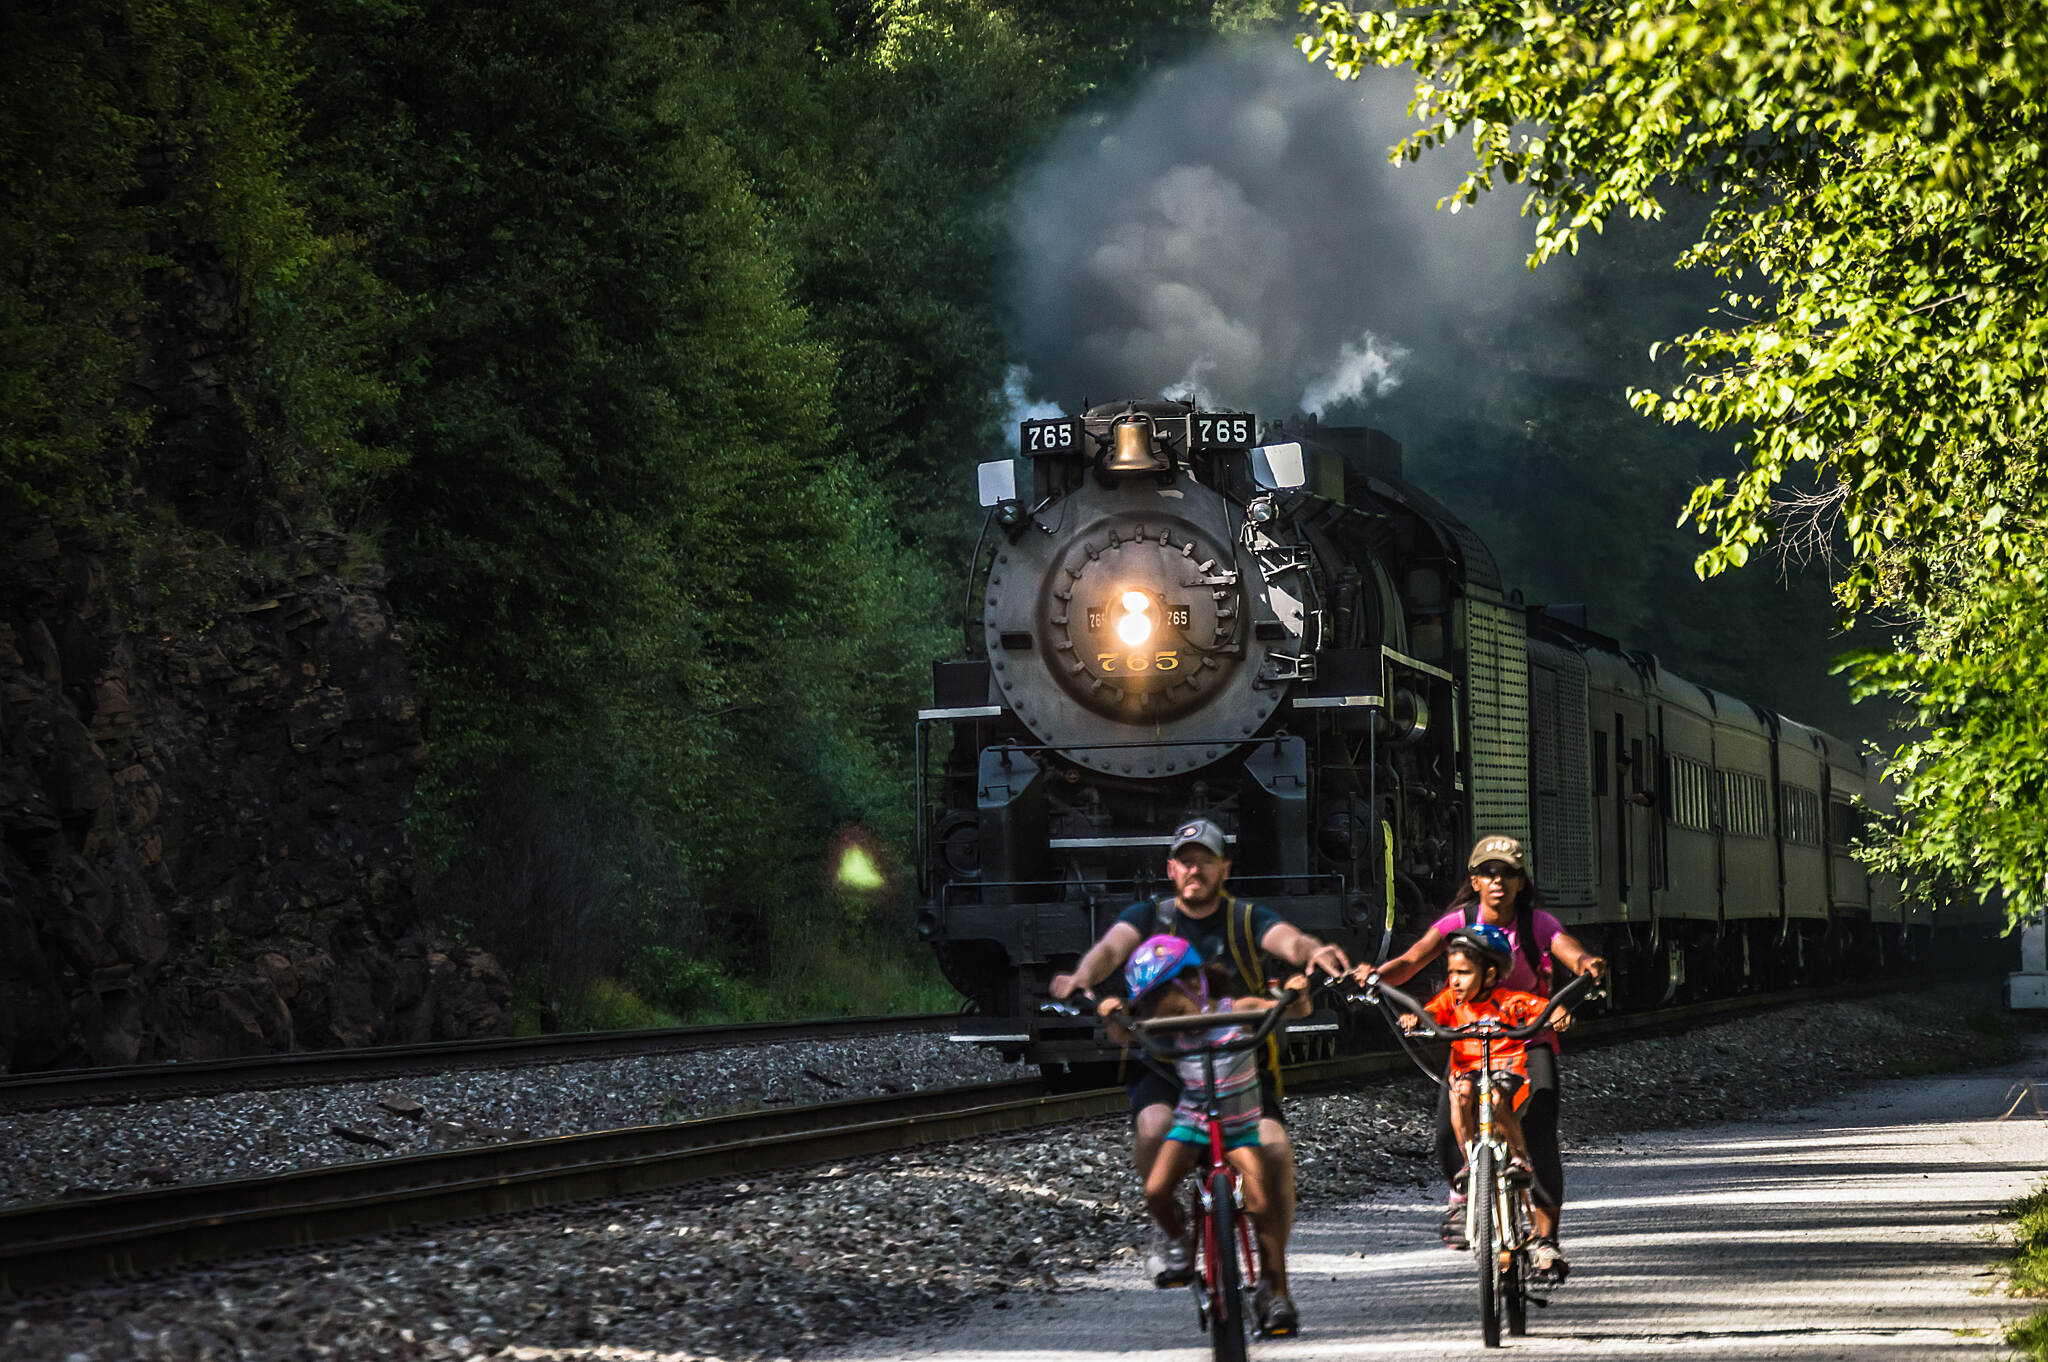 D & L Trail - Lehigh Gorge State Park Trail Nickel Plate Road 765  Caught this Train on a return trip to Allentown in August of 2015